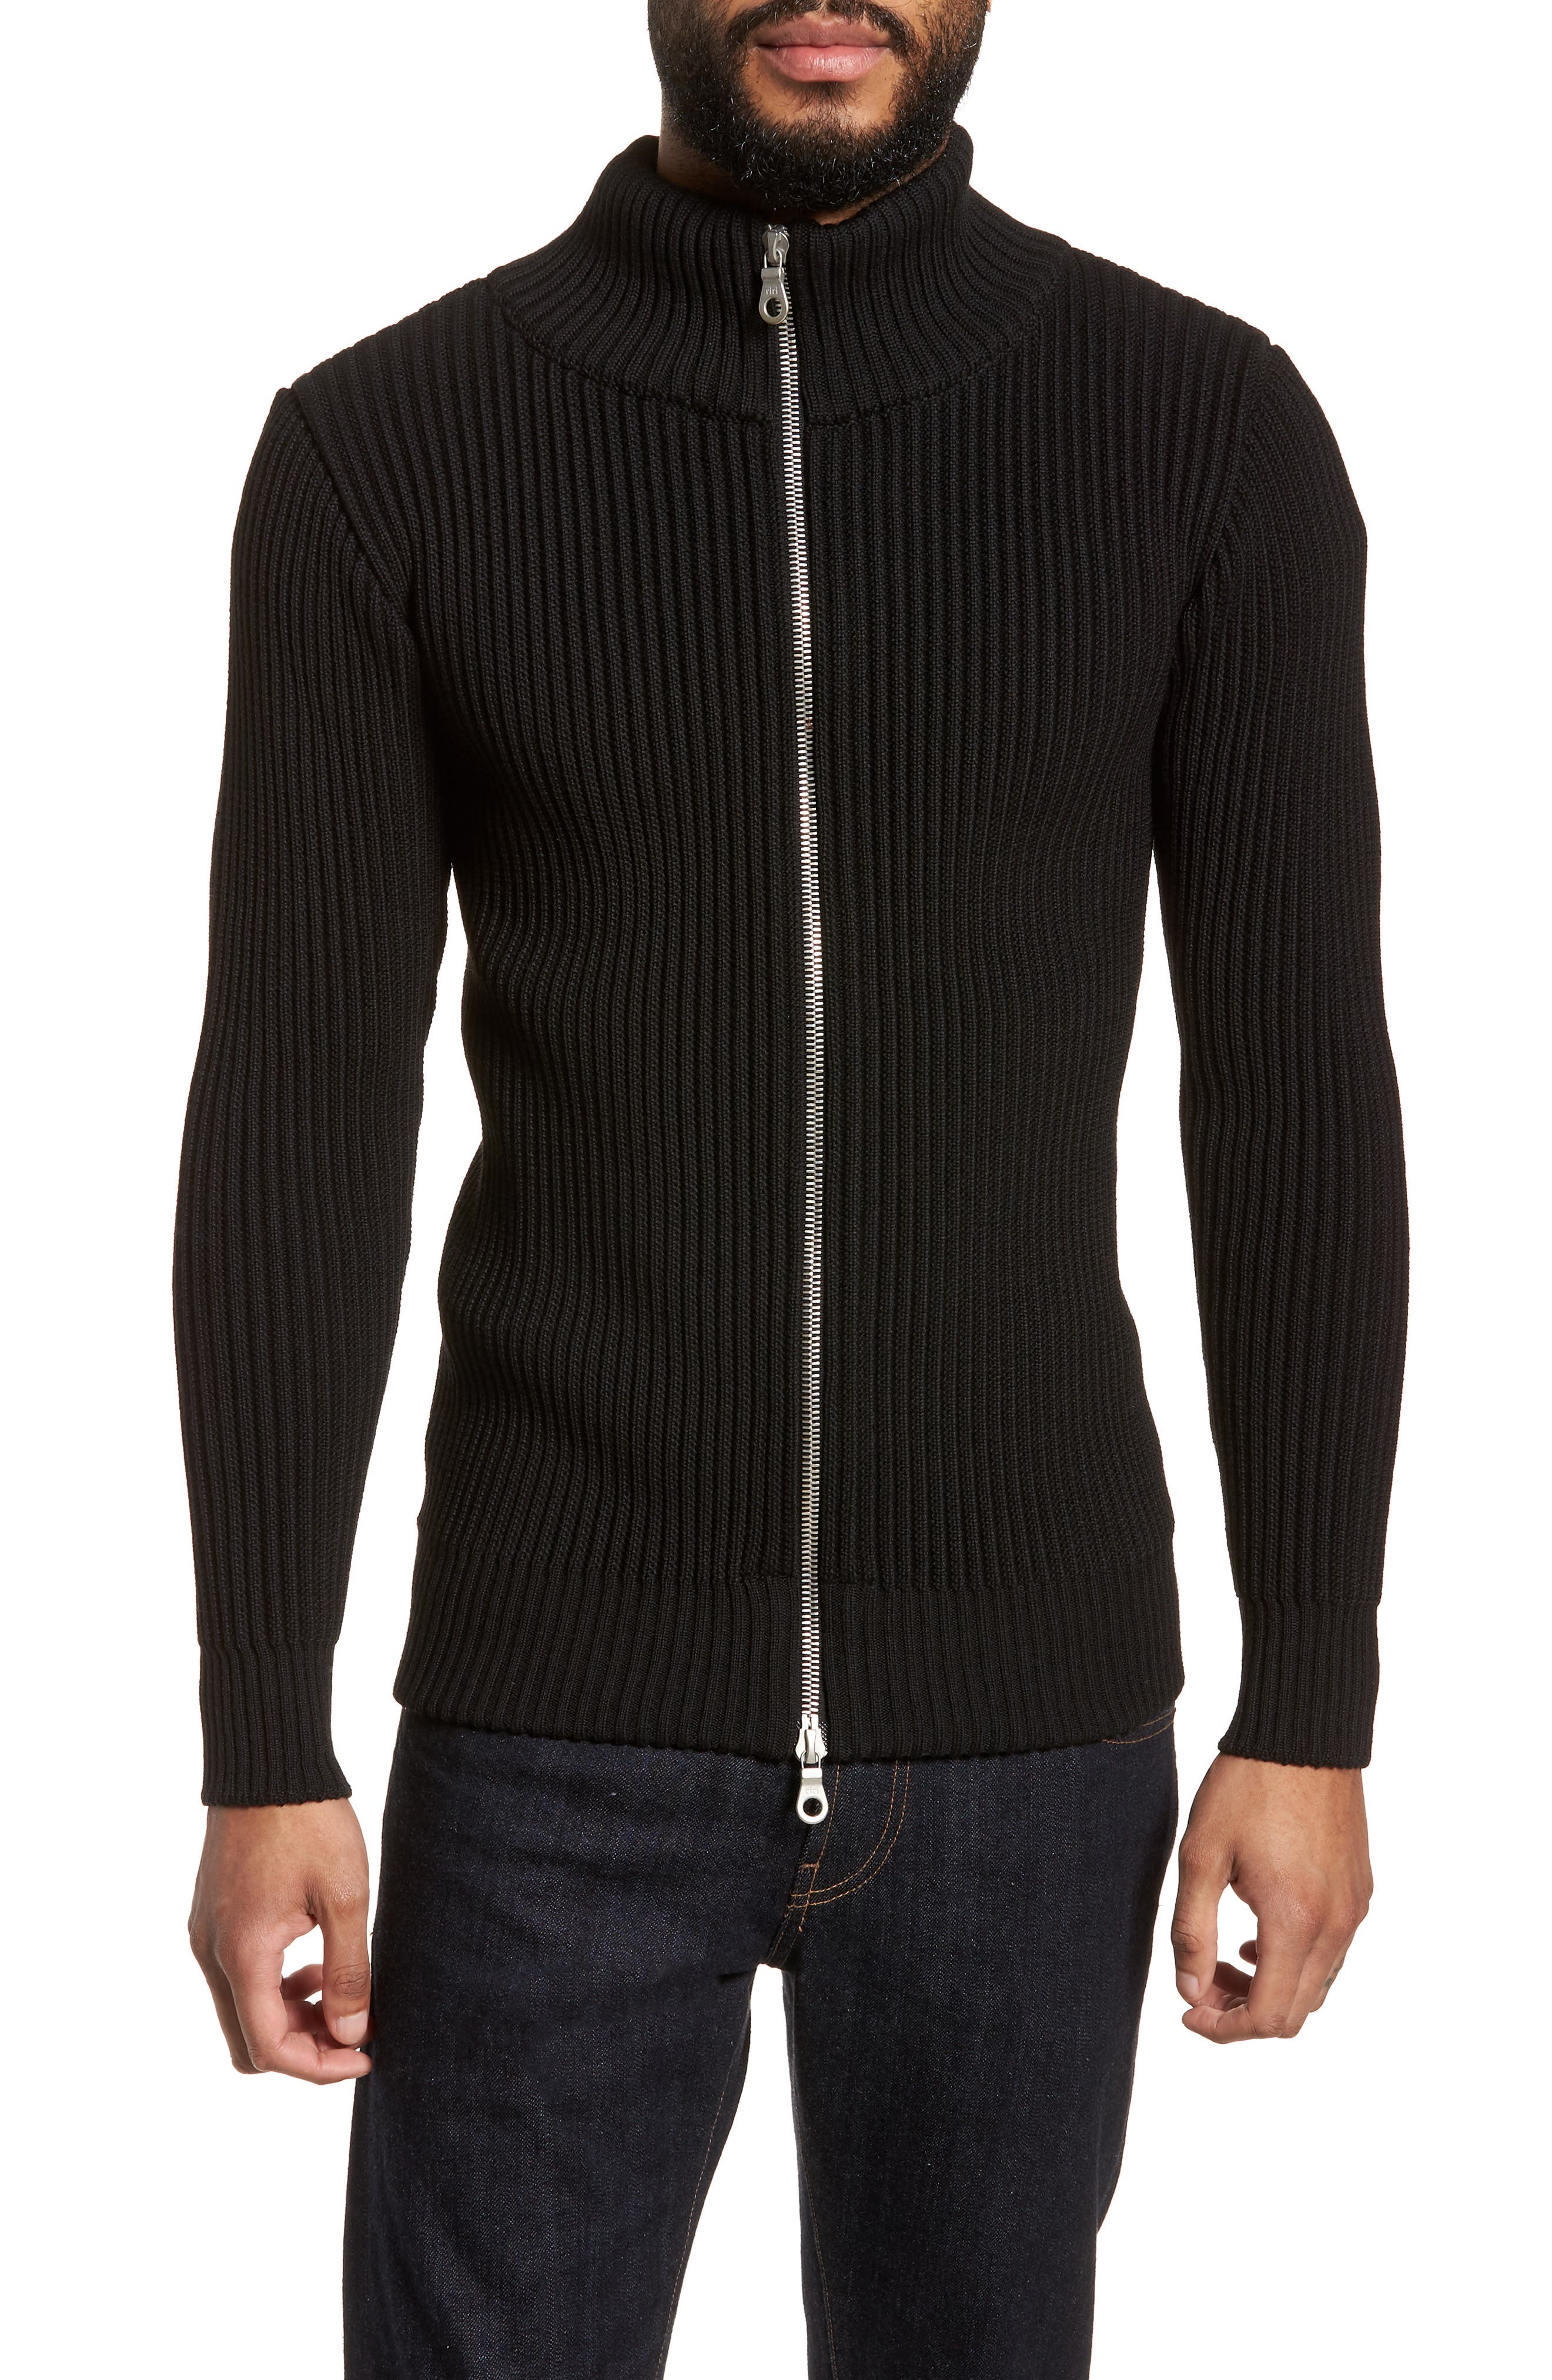 S.N.S. HERNING Fang Wool Sweater Jacket, Main, color, 001